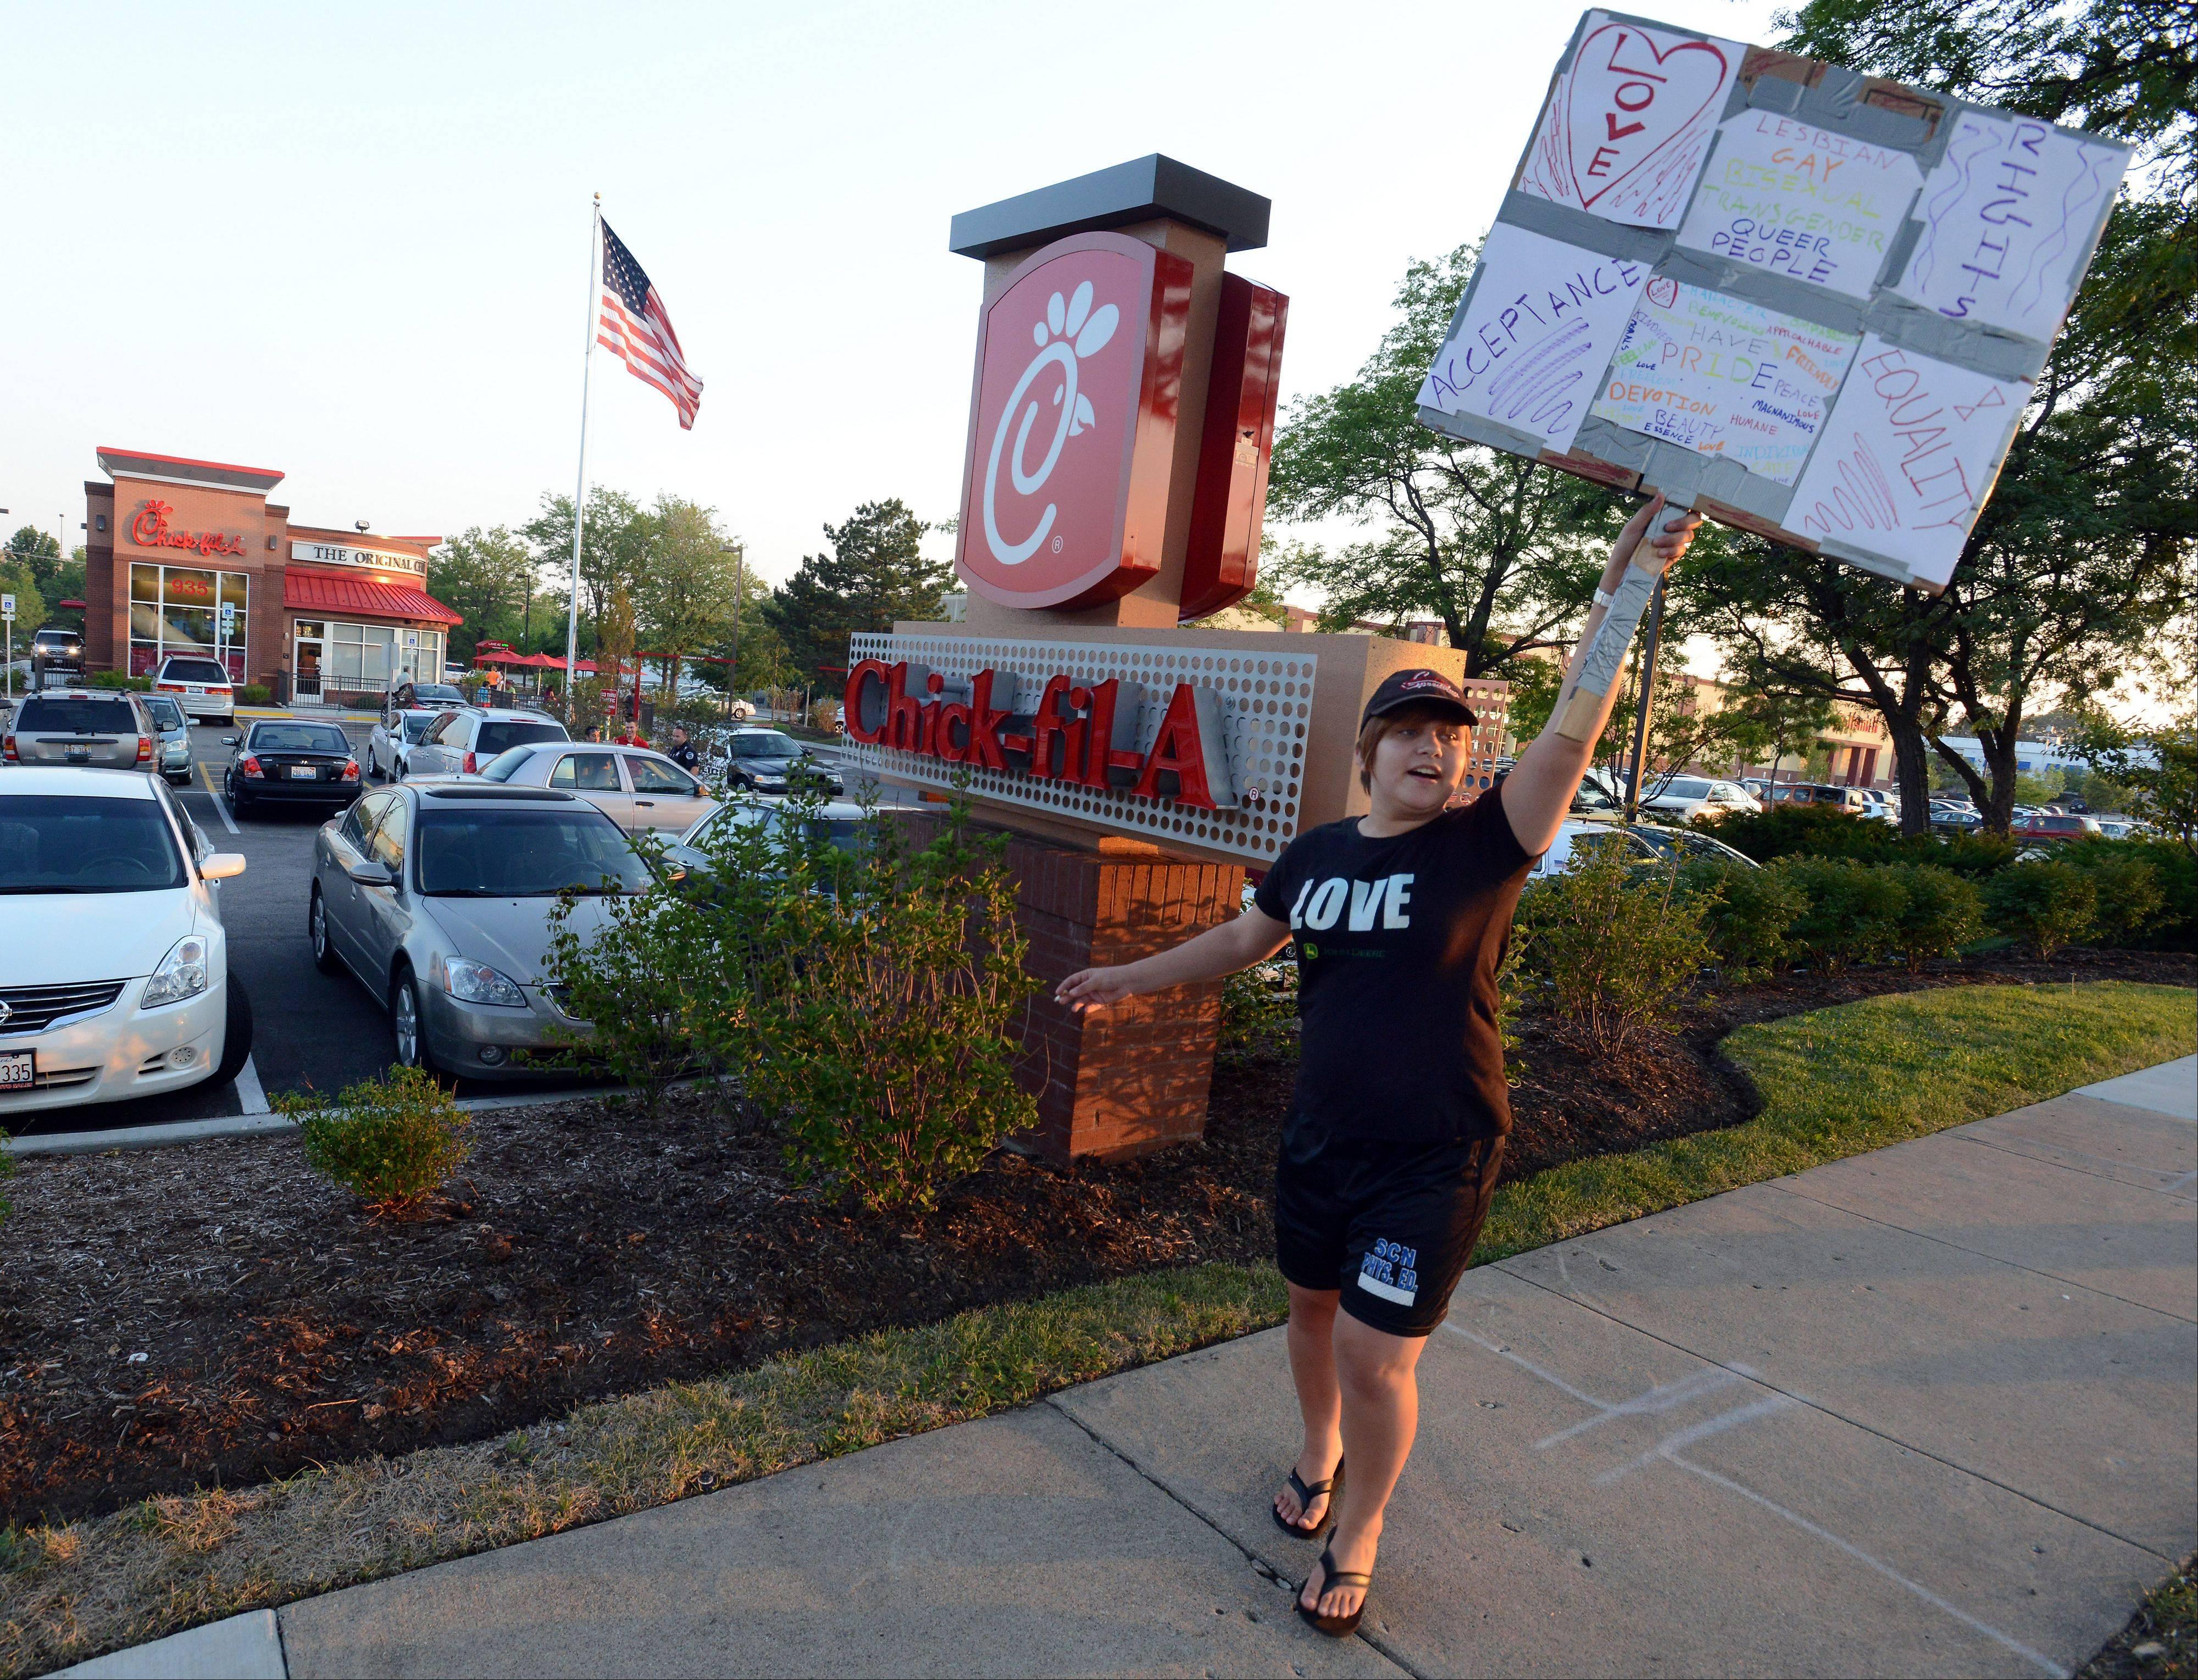 Liz Sibrava, 17, of St. Charles and two of her friends came to protest the Chick-fil-A president's stance against gay marriage at the Schaumburg restaurant on Friday.